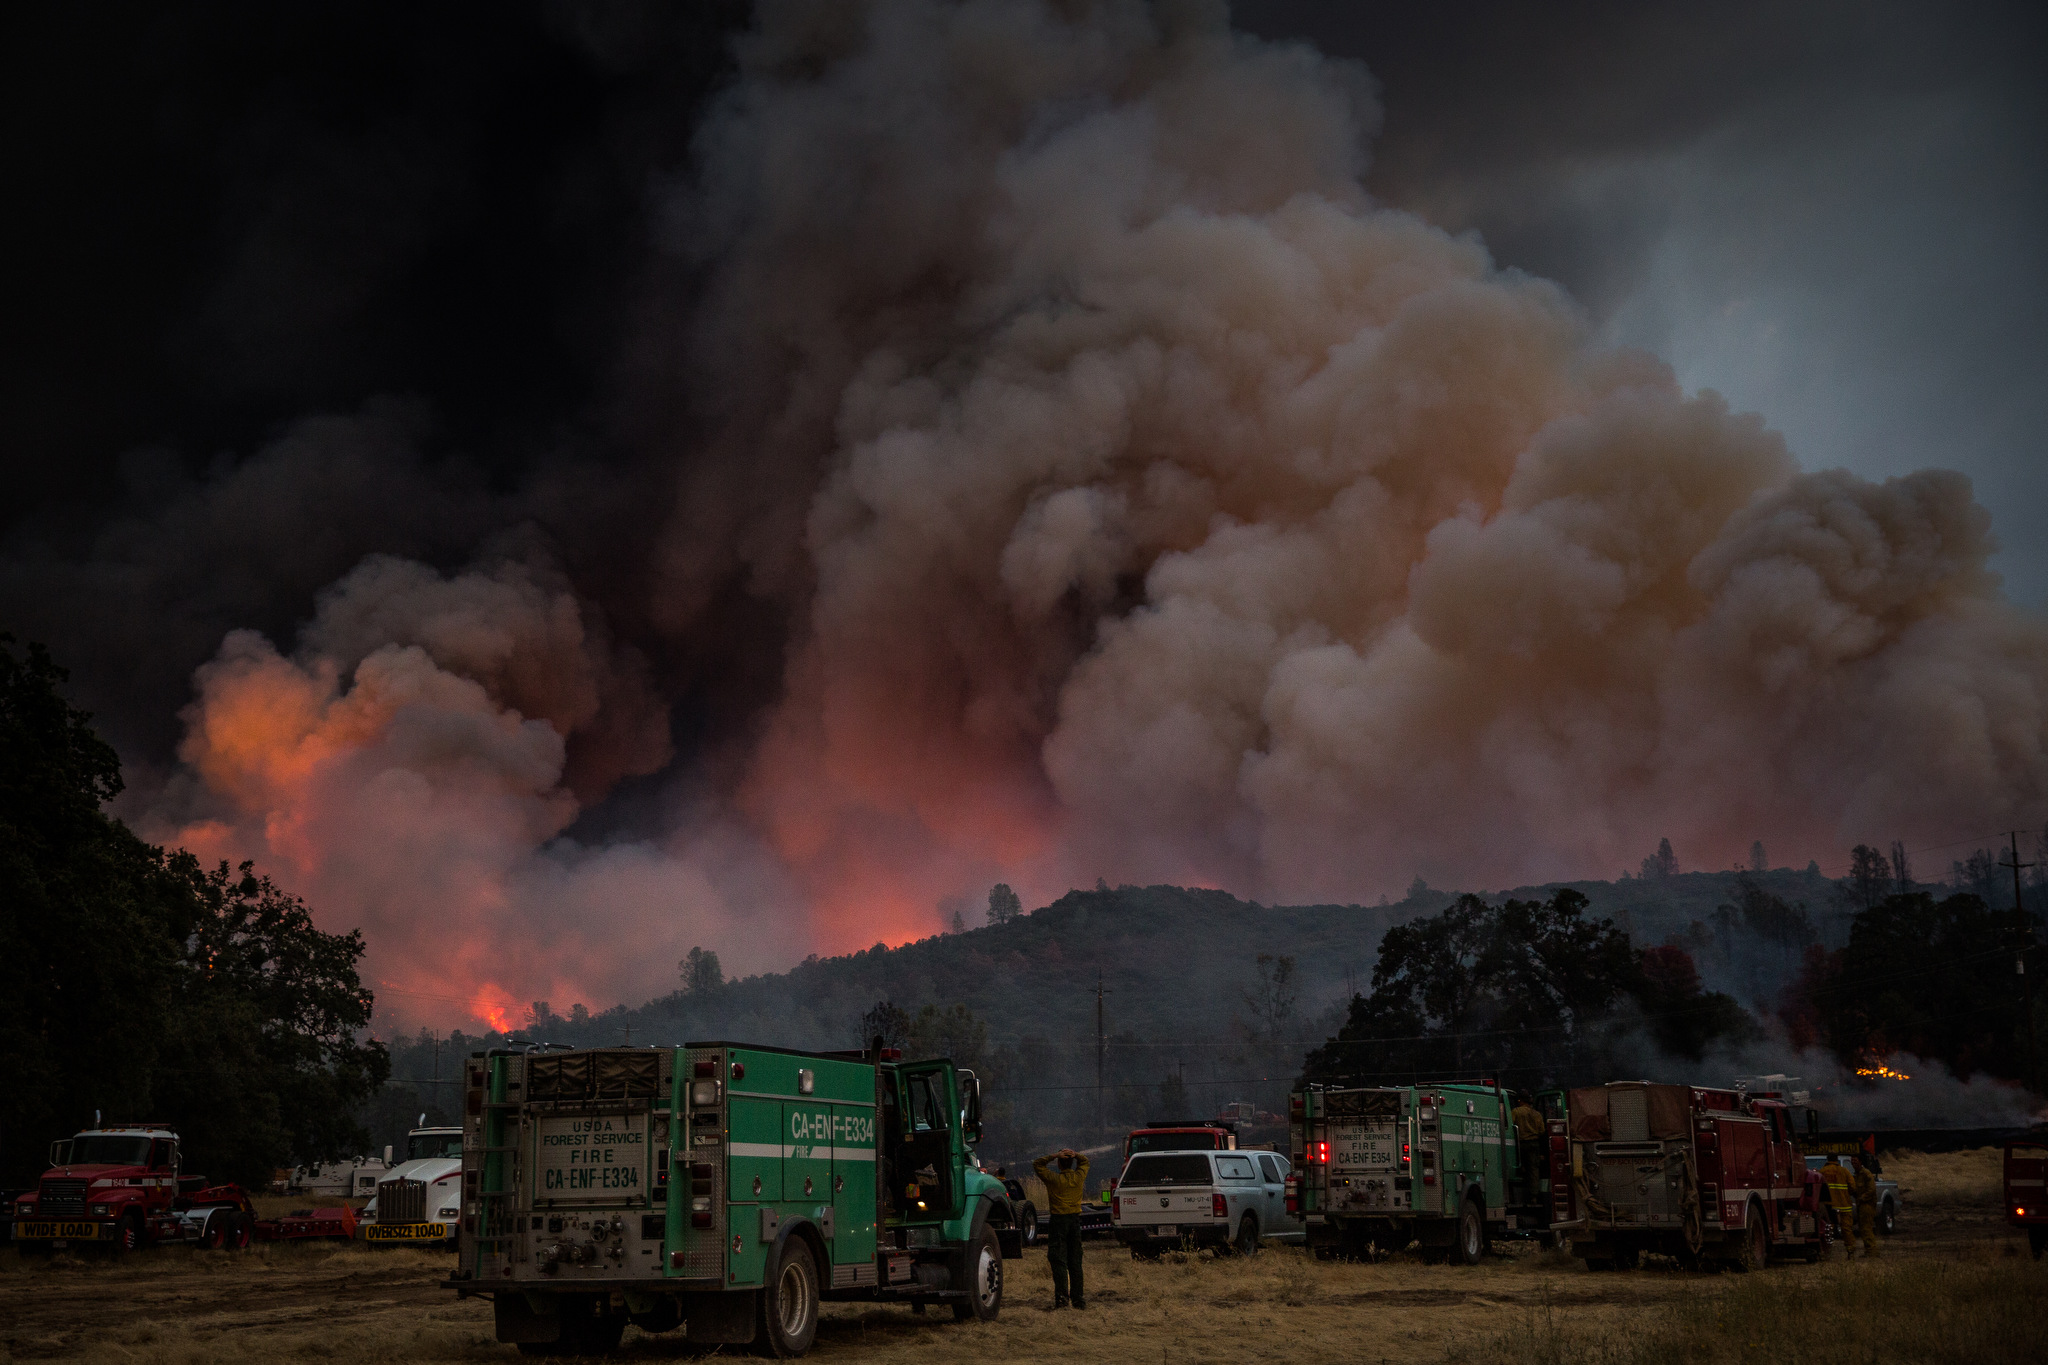 Firefighters watch the Rocky Fire advance in Lake County, California on July 30, 2015. As of August 5, the fire had consumed 69,600 acres and is one of 23 wildfires burning in California.